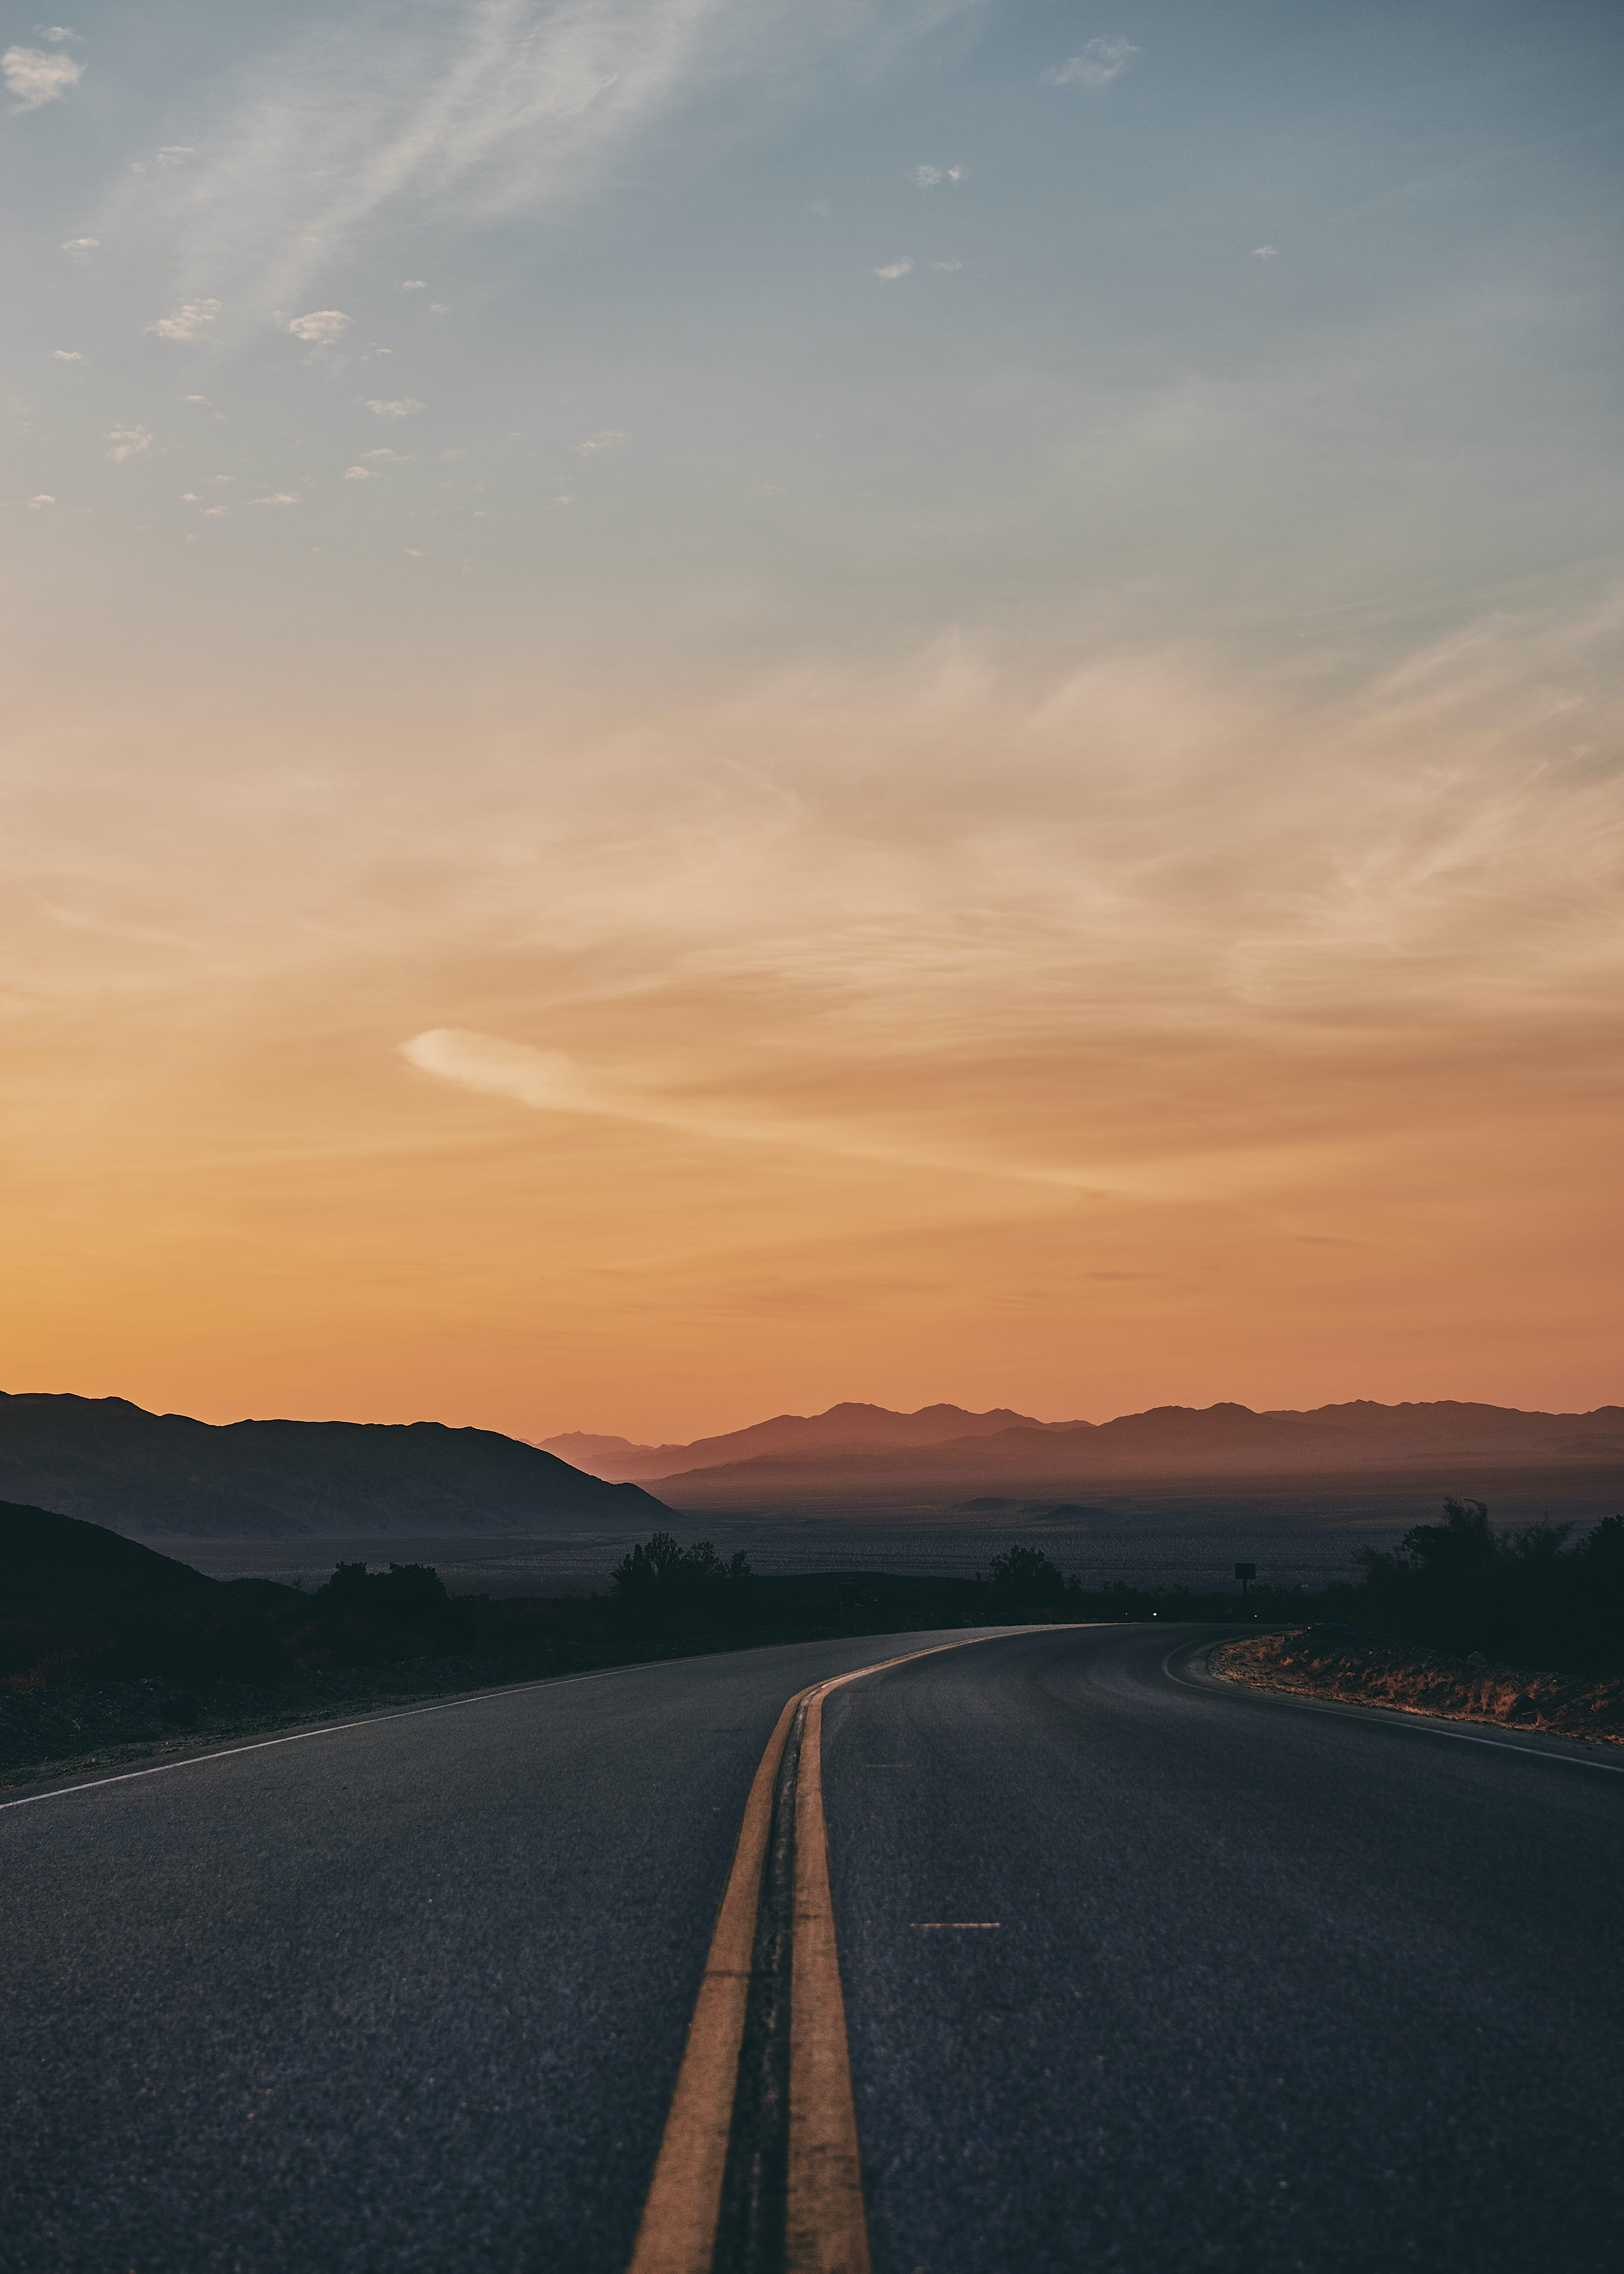 500 Road Trip Pictures Download Free Images On Unsplash